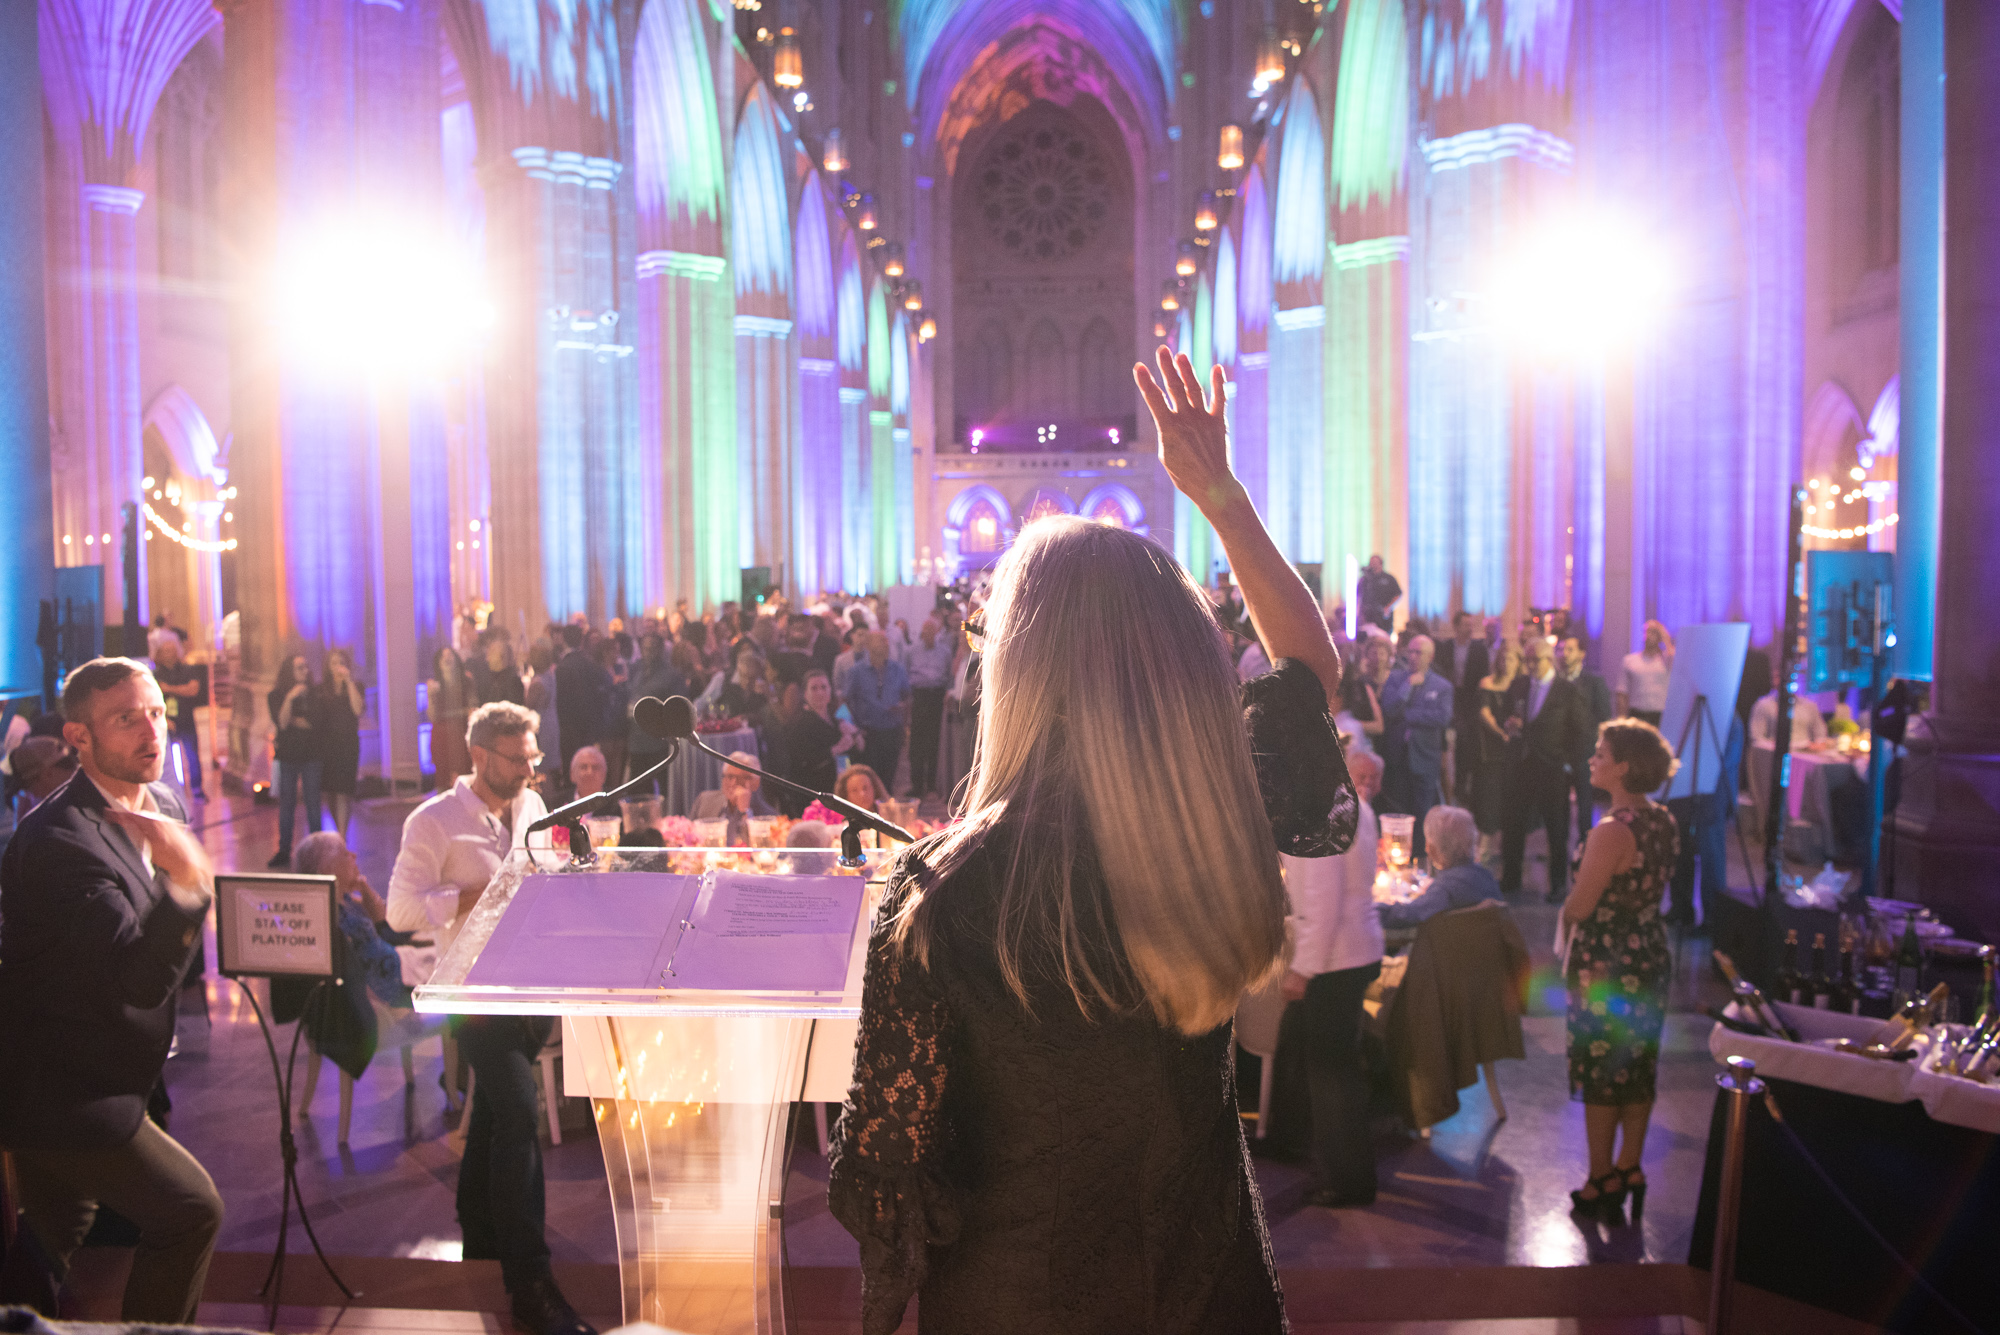 Anyone who attended the Human Rights Campaign's 7th annual Chefs for Equality gala on October 9 and left hungry did something wrong! The Washington National Cathedral was awash in rainbow as it played host to hundreds of Washingtonians eager to show their support for the HRC Foundation and their mission of fighting for full LGBTQ equality. And show their support they did, as the event raised{&amp;nbsp;} more than$300,000 for the foundation, through ticket sales, a silent auction and a live auction led by auctioneer April Brown. More than 120 of the DMV's top chefs and mixologists were on hand to do the &quot;deliciously defiant&quot; theme proud, serving up small bites (like foie gras macaroons and dan dan noodles in mini carryout containers) and cocktails to guests. The luckiest guests dined at private tables,{&amp;nbsp;}where celebrity chefs created lavish five-course paired meals. Back by popular demand, the &quot;5/10/15 Speed Diner&quot; ticket option allowed guests to purchase a seat at the intimate diner-style counters where they were treated to a specialty cocktail and a mini five-course tasting menu prepared by five pairs of renowned chefs. If you missed the fun, scroll through our photo gallery to get an insider's look! (Image:{&amp;nbsp;}Jeff Martin for Human Rights Campaign)<br>